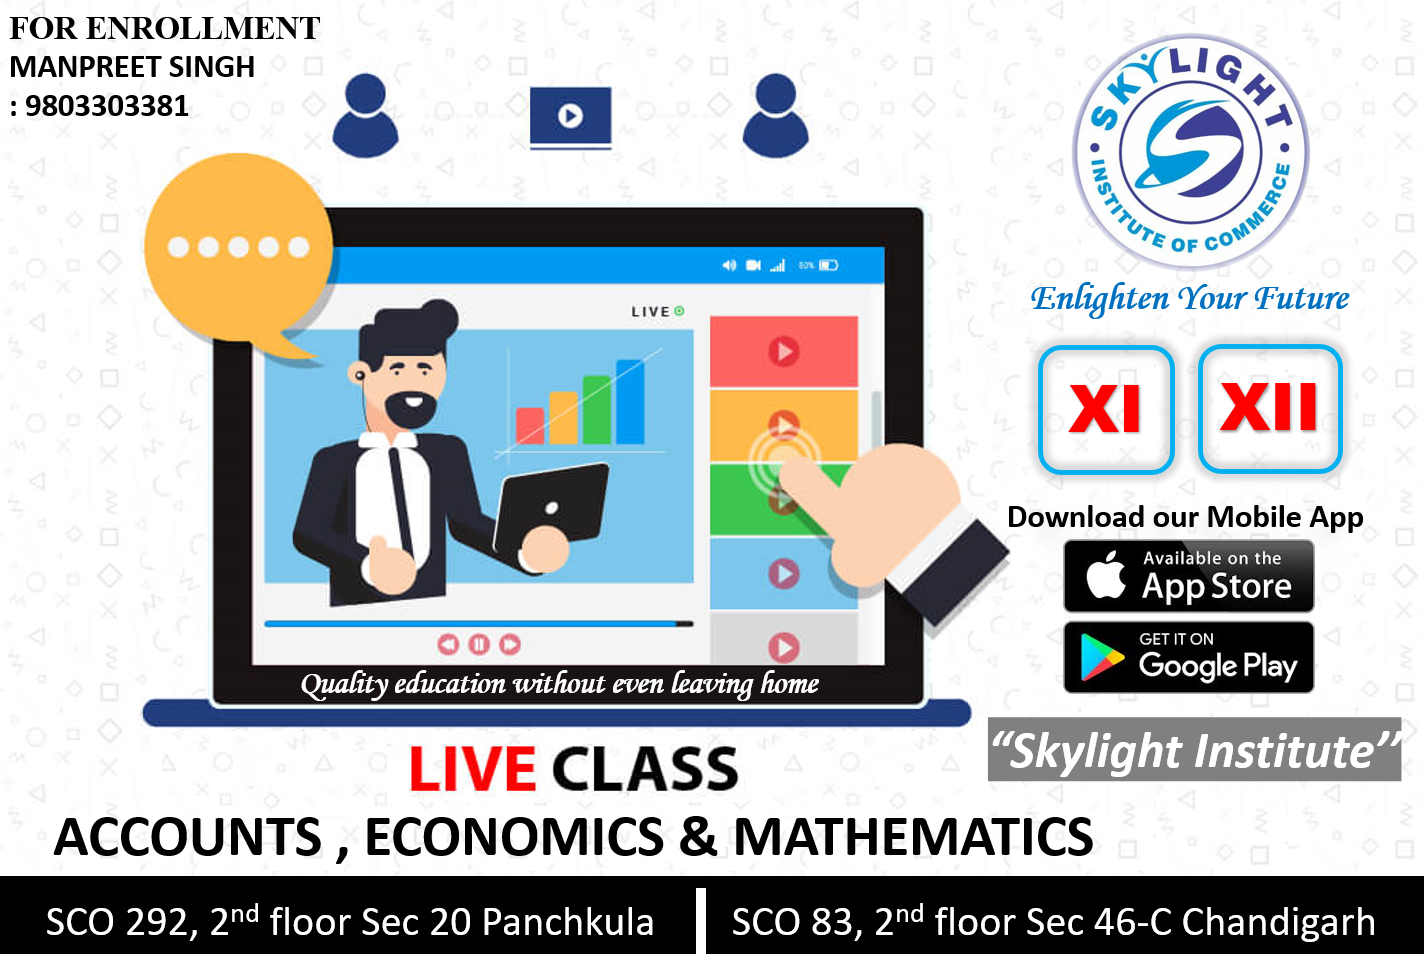 Online Classes for 11th and 12th Commerce | SKYLIGHT INSTITUTE OF COMMERCE | online classes for commerce - GL66545